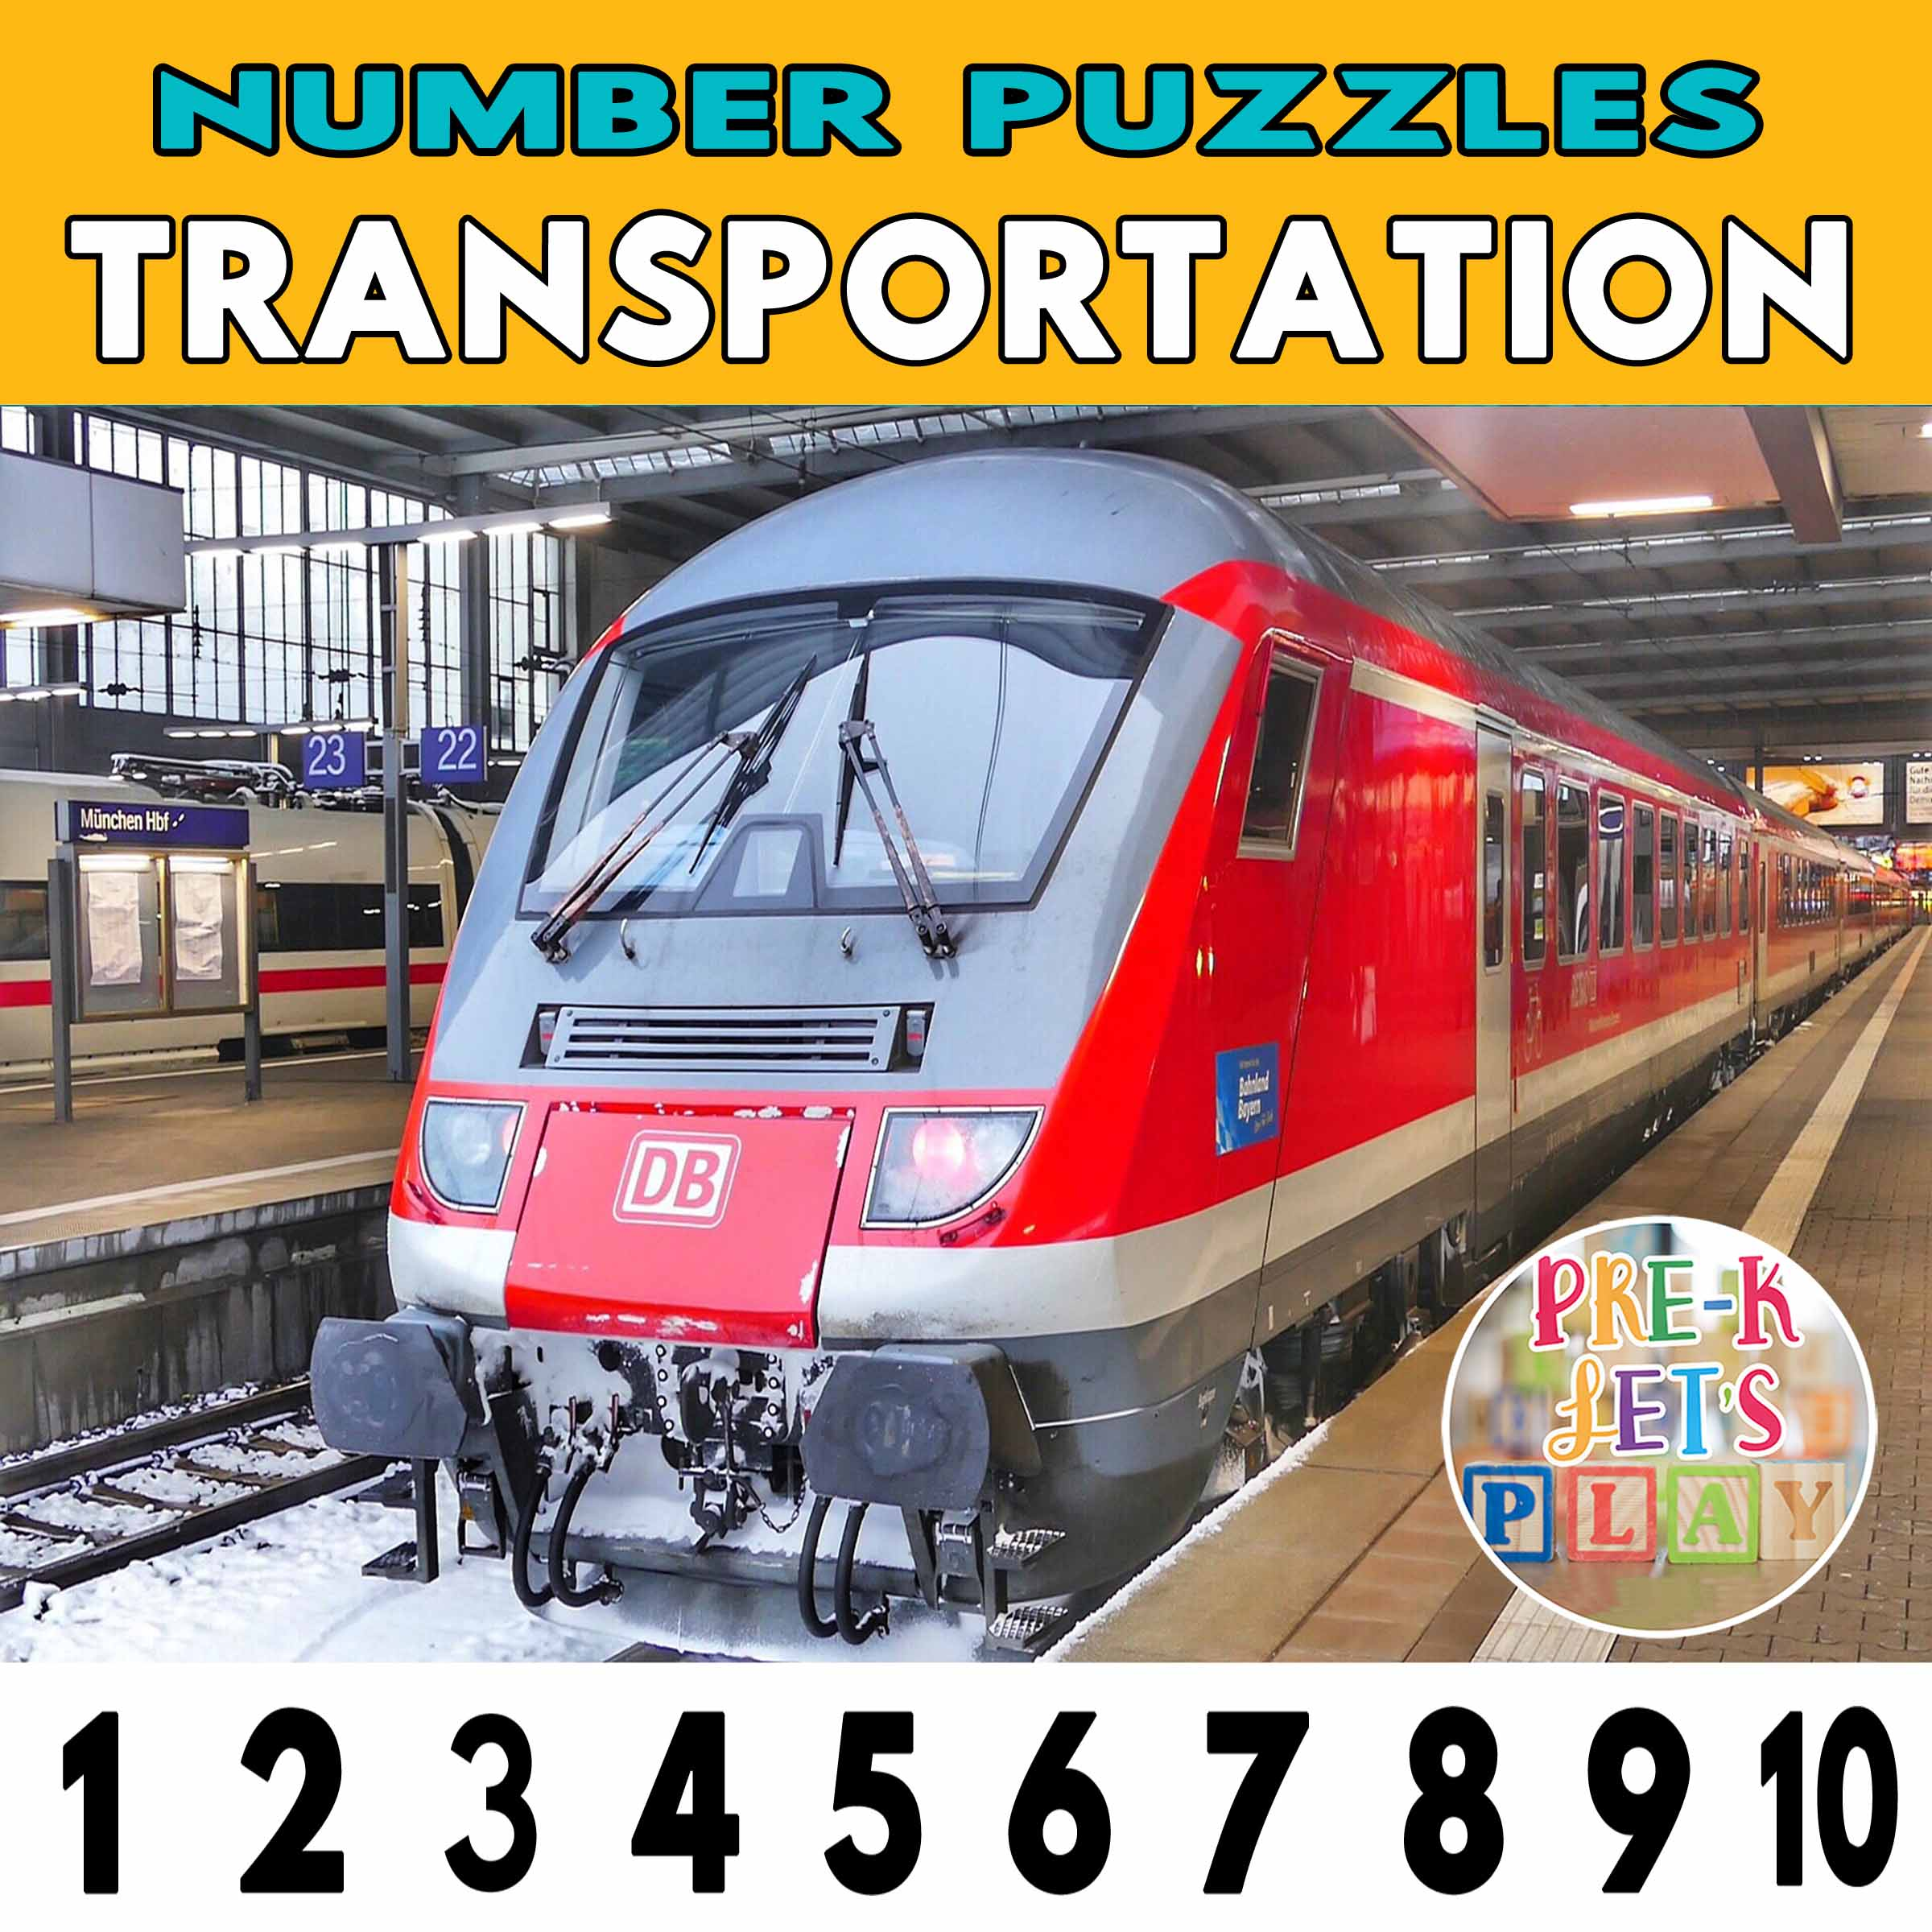 number strip puzzle cover of a train. This counting game activity helps kids practice number order and identify other transportation number puzzles.